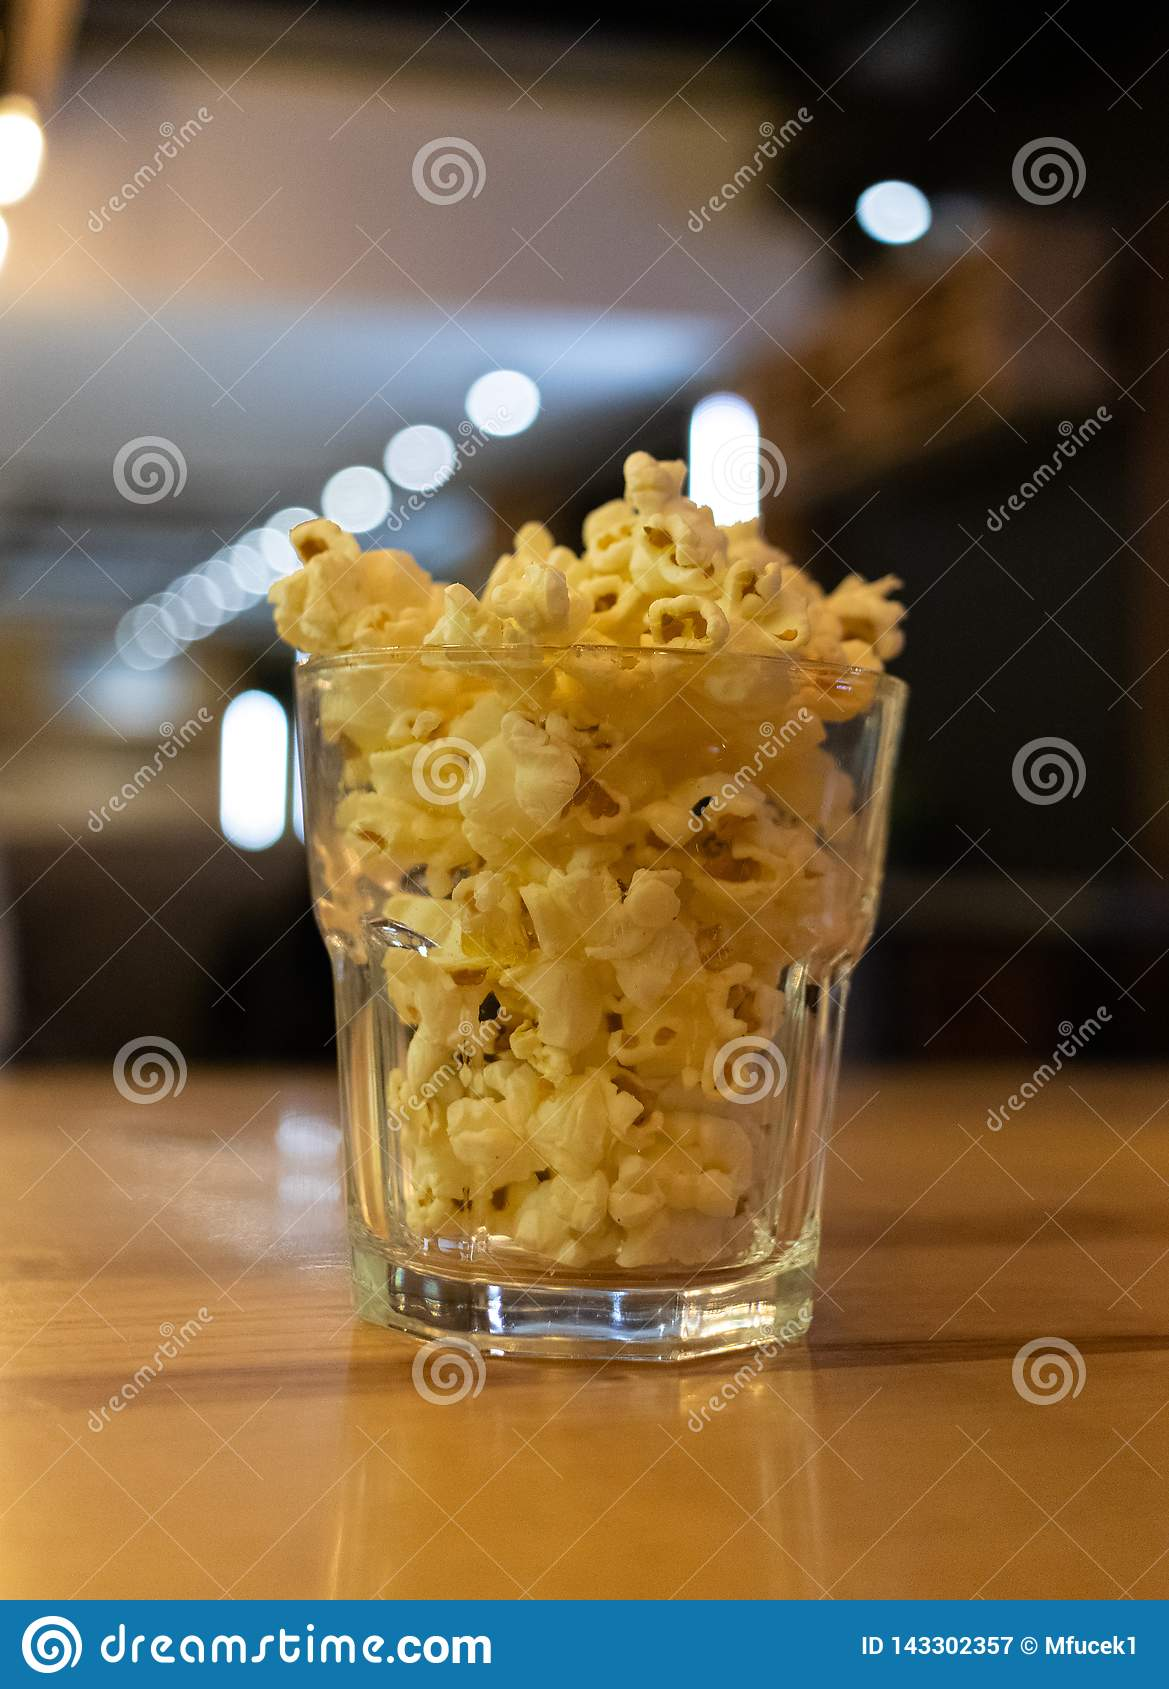 Glass bowl with tasty popcorn on table